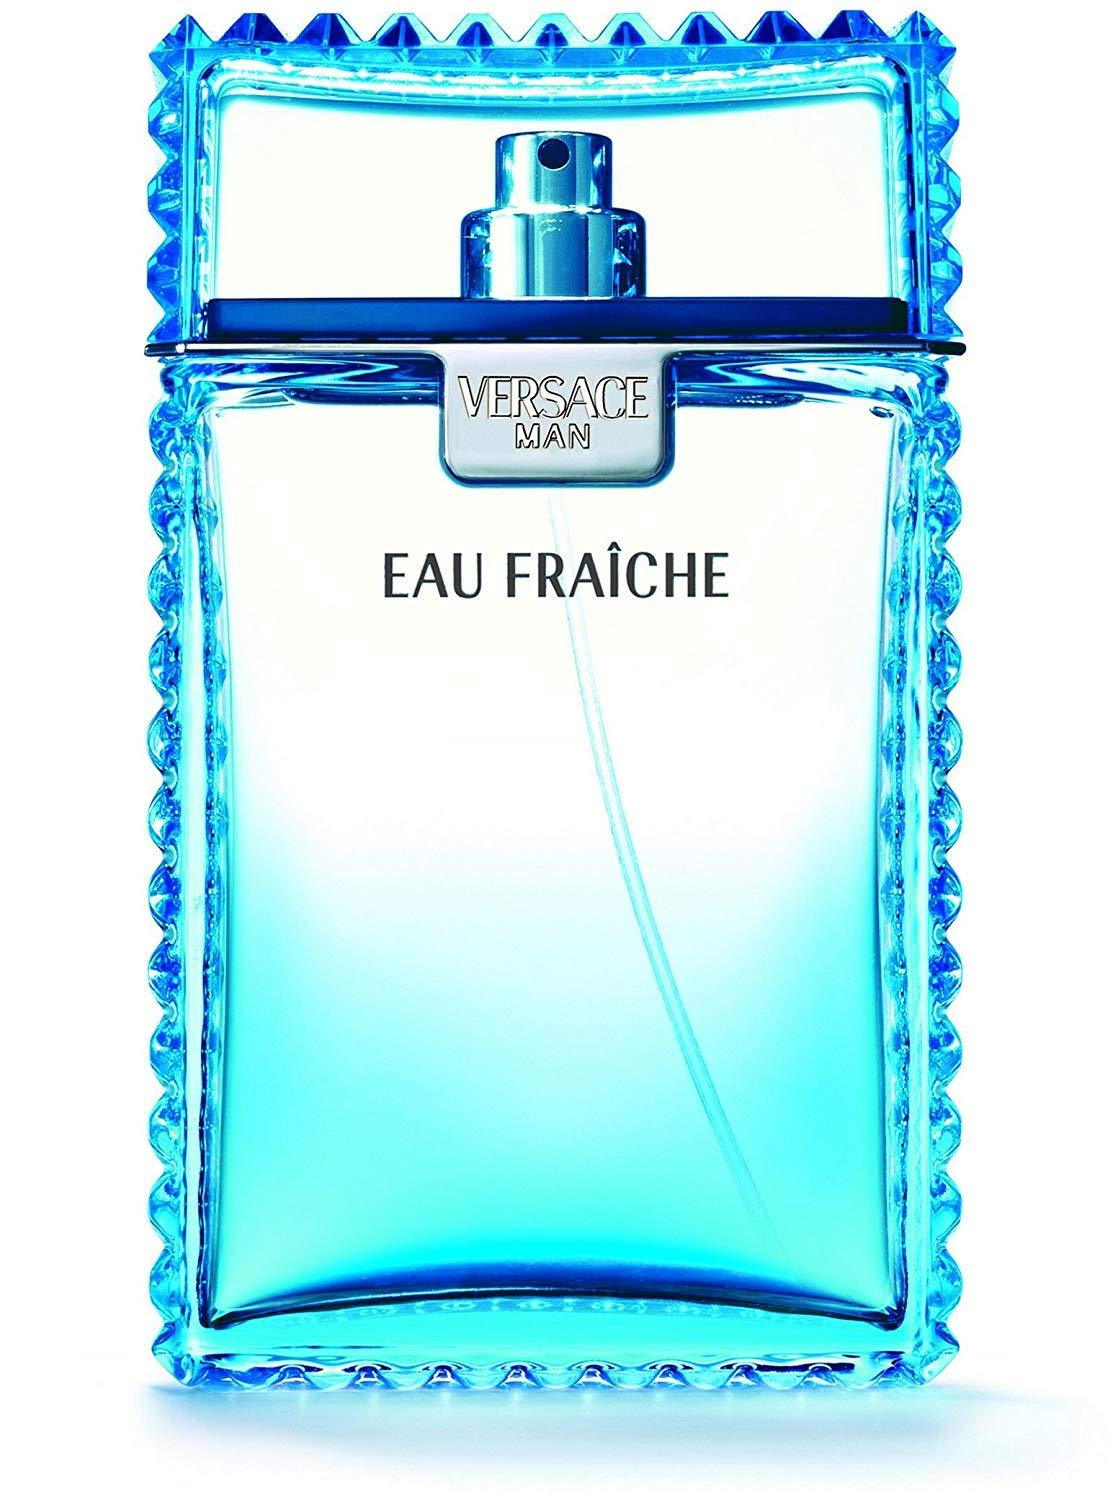 Man Eau Fraiche Eau De Toilette Spray Men by Versace, 6.7 Fl. Oz